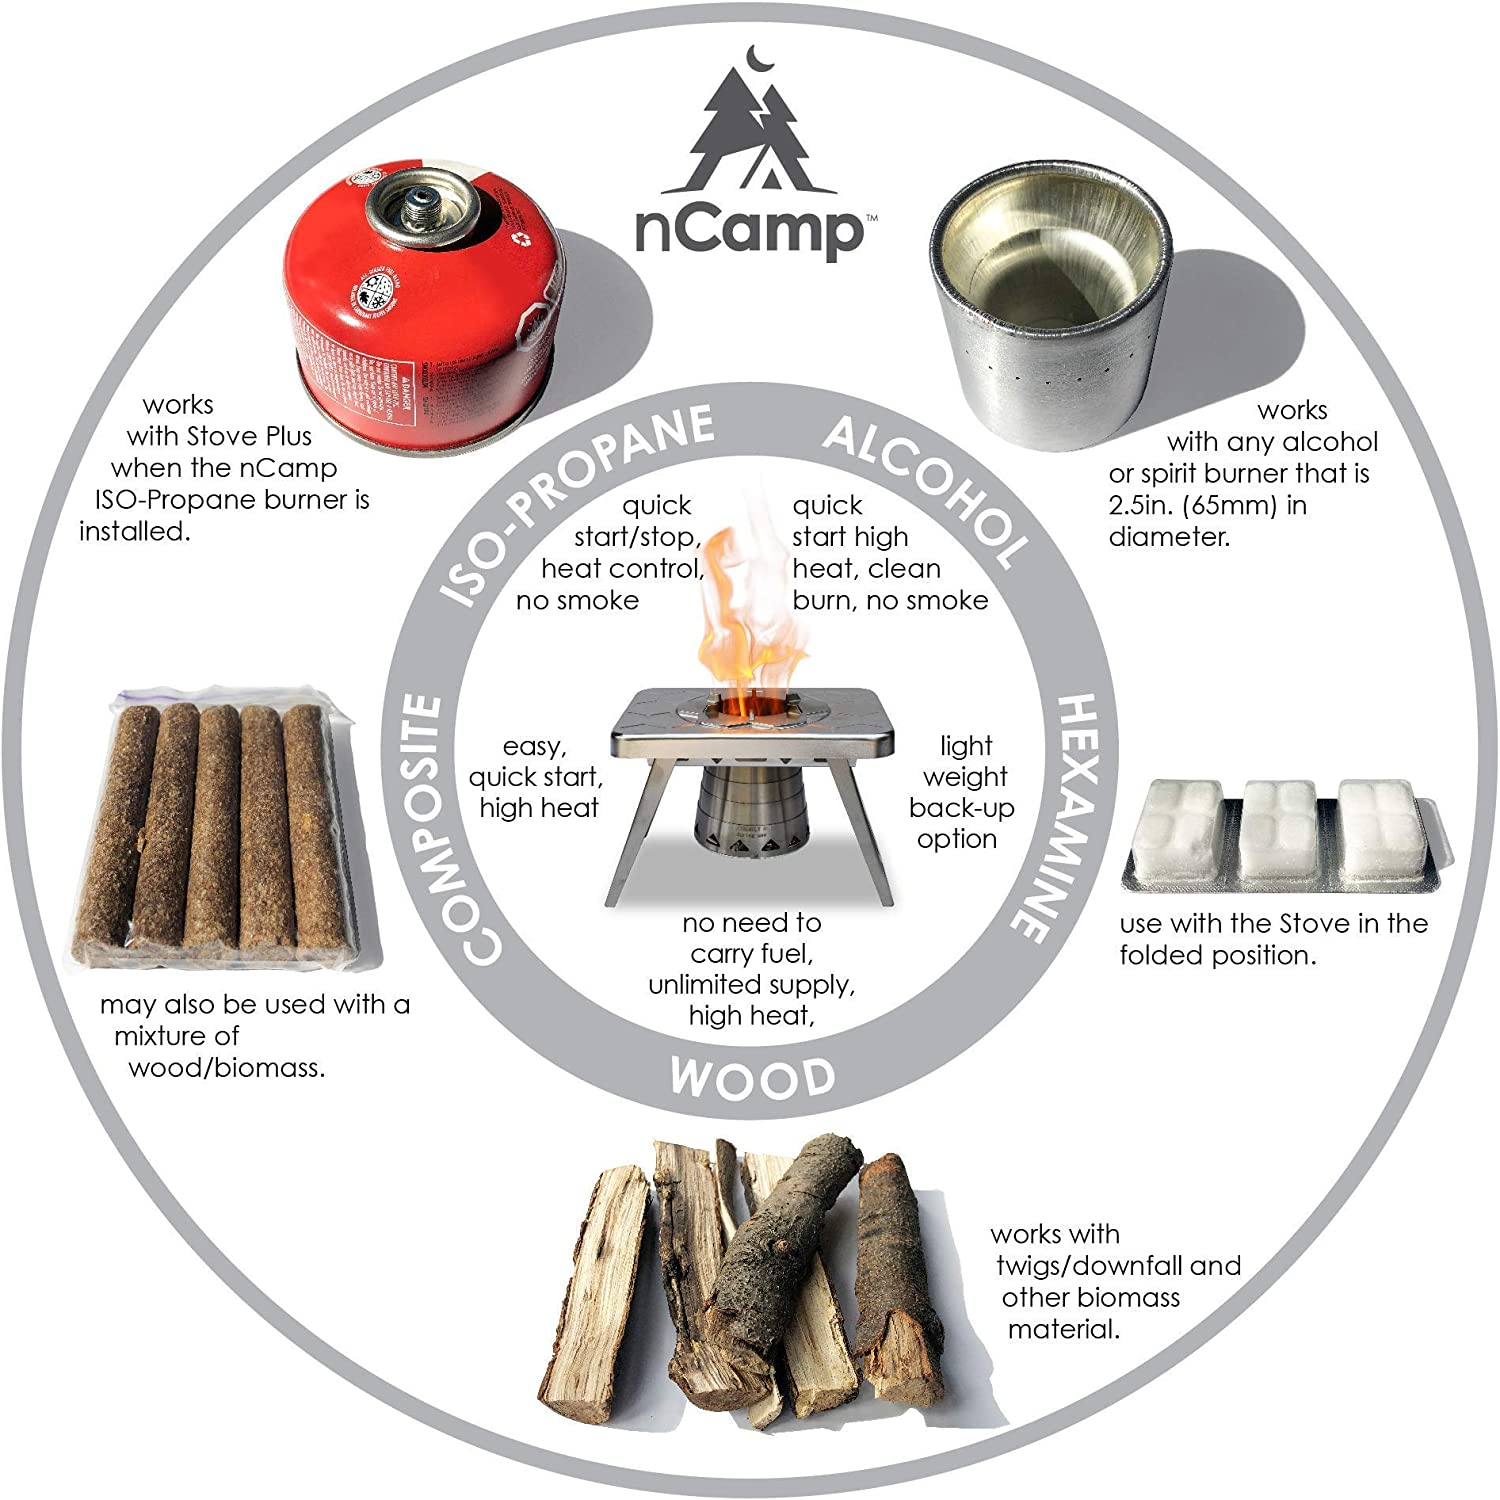 Wood Made for Backpacking Camp Hiking Outdoor Cooking Tailgating RV Alcohol Includes Gas Adapter Fuel Options Include Gas nCamp Stove Plus Multi-Fuel Camping Stove Hexamine Portable and Compact